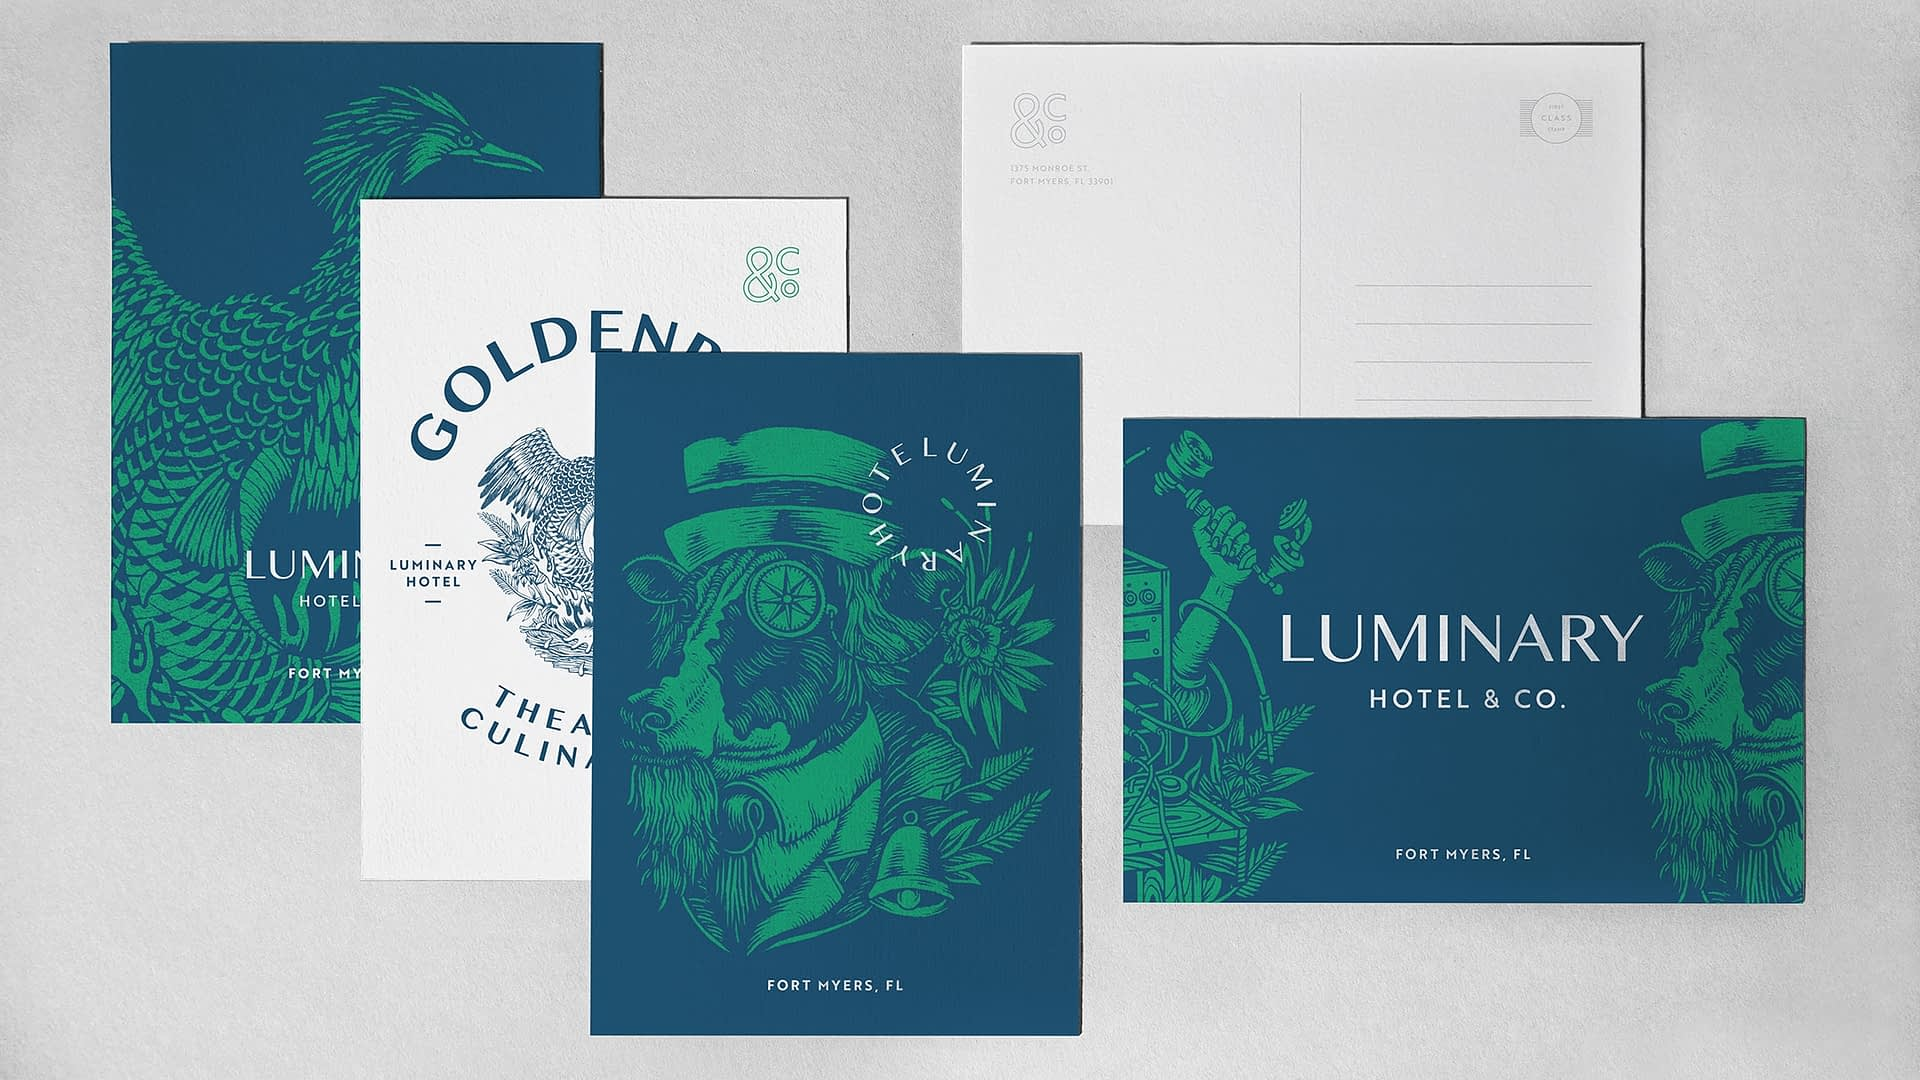 hotel branding work for luminary hotel and co - postcards